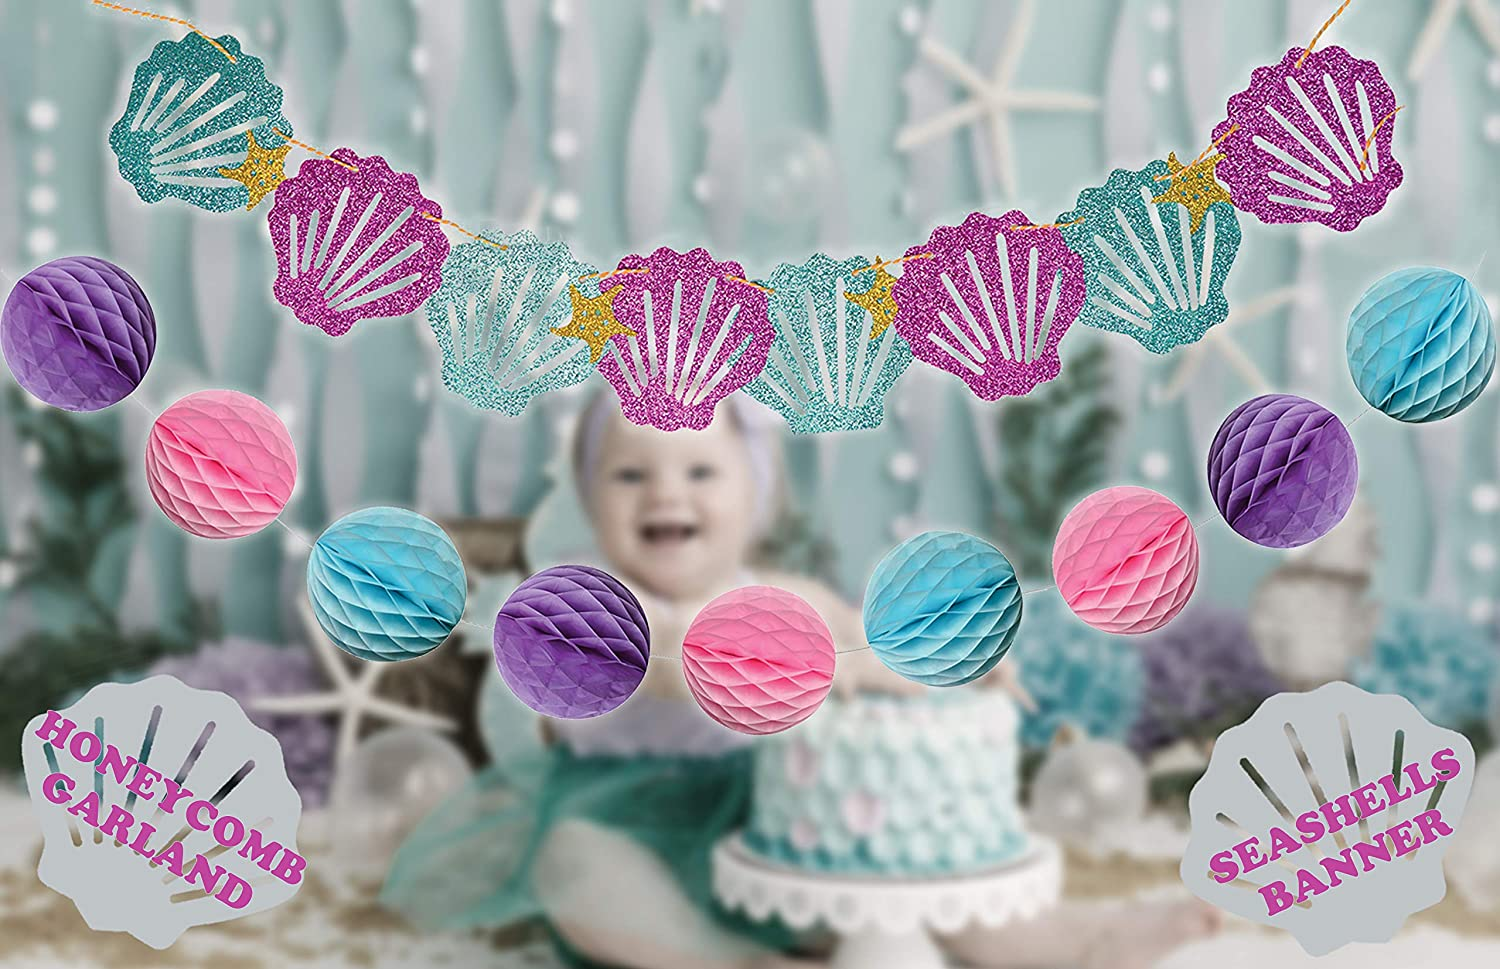 Bridal /& Baby Shower Themed Lets Be Little Mermaids Party Mermaid Tails Under The Sea Decorations Supplies Kit for Birthday Premium Quality by PomPomGLAM Bridal /& Baby Shower Themed Let/'s Be Little Mermaids Party Premium Quality by PomPomGLAM